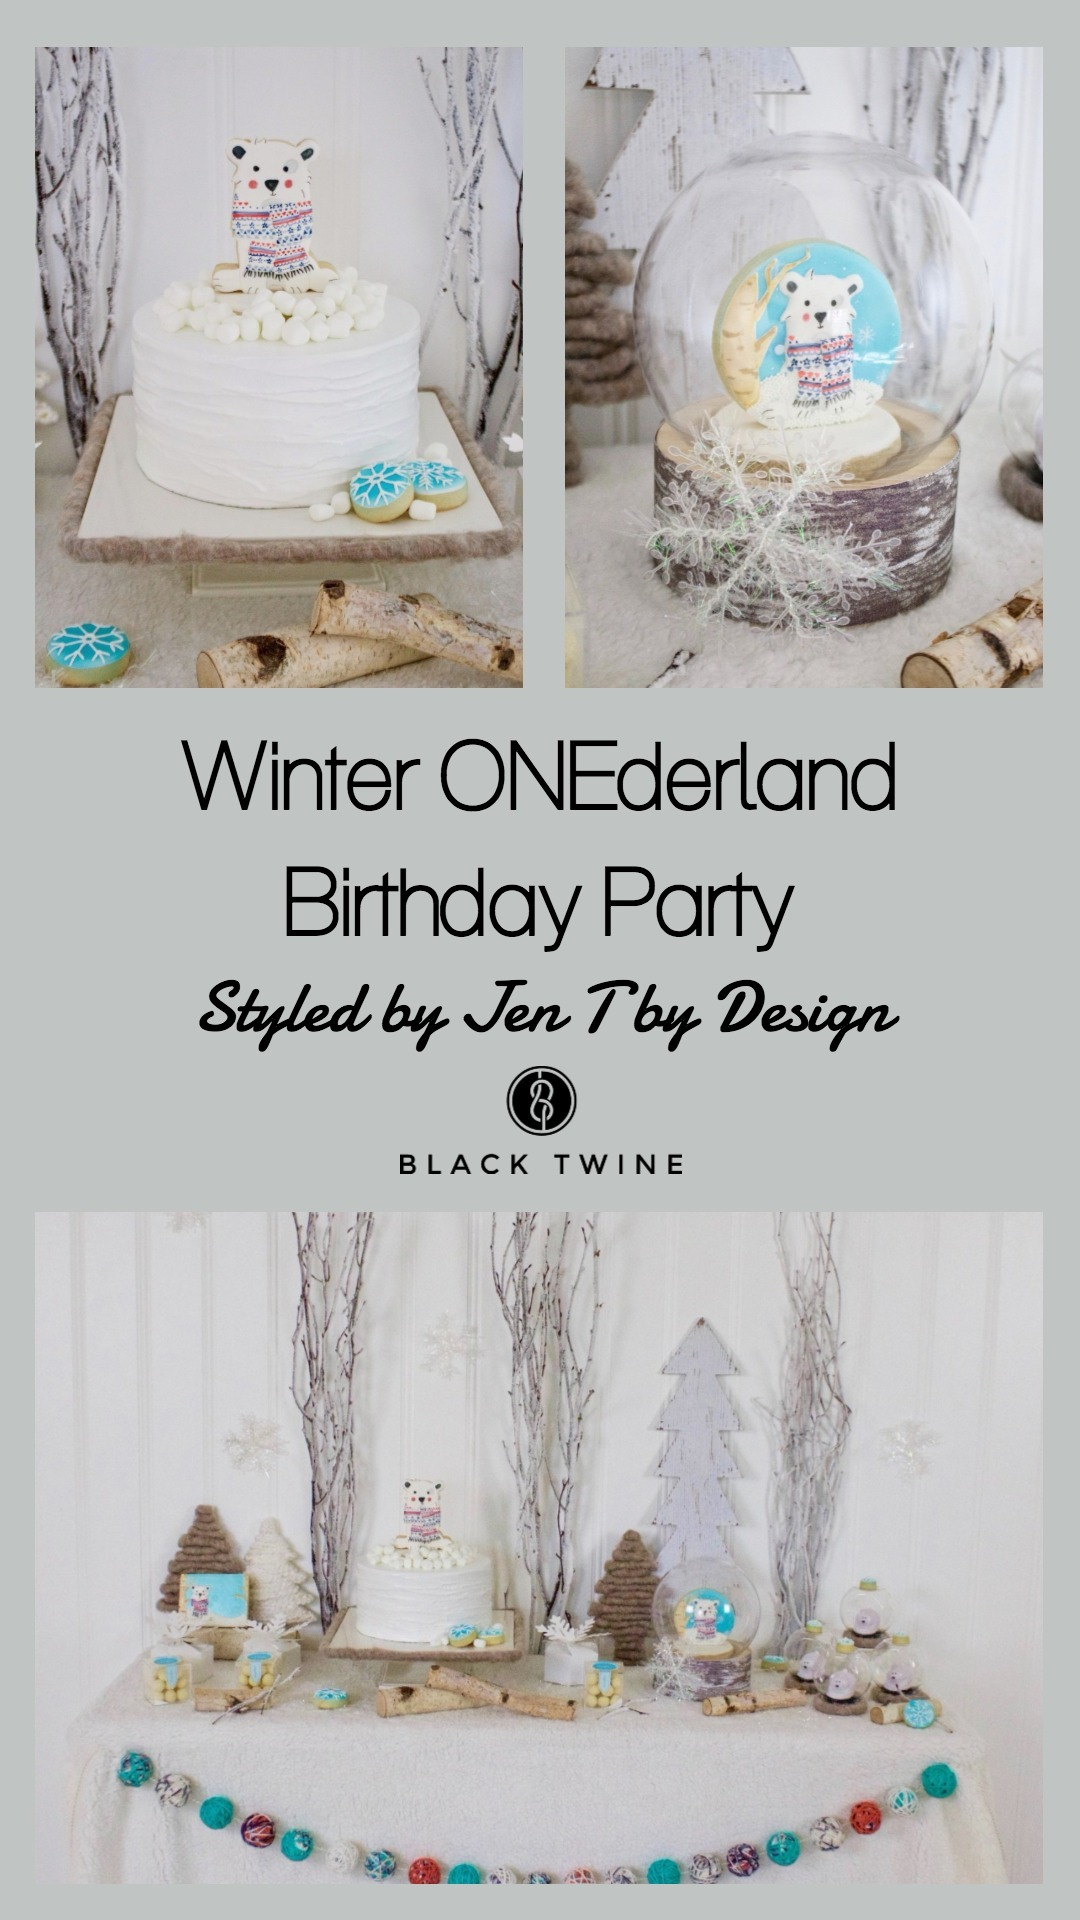 Winter Onederland Party by Jen T by Design | Black Twine